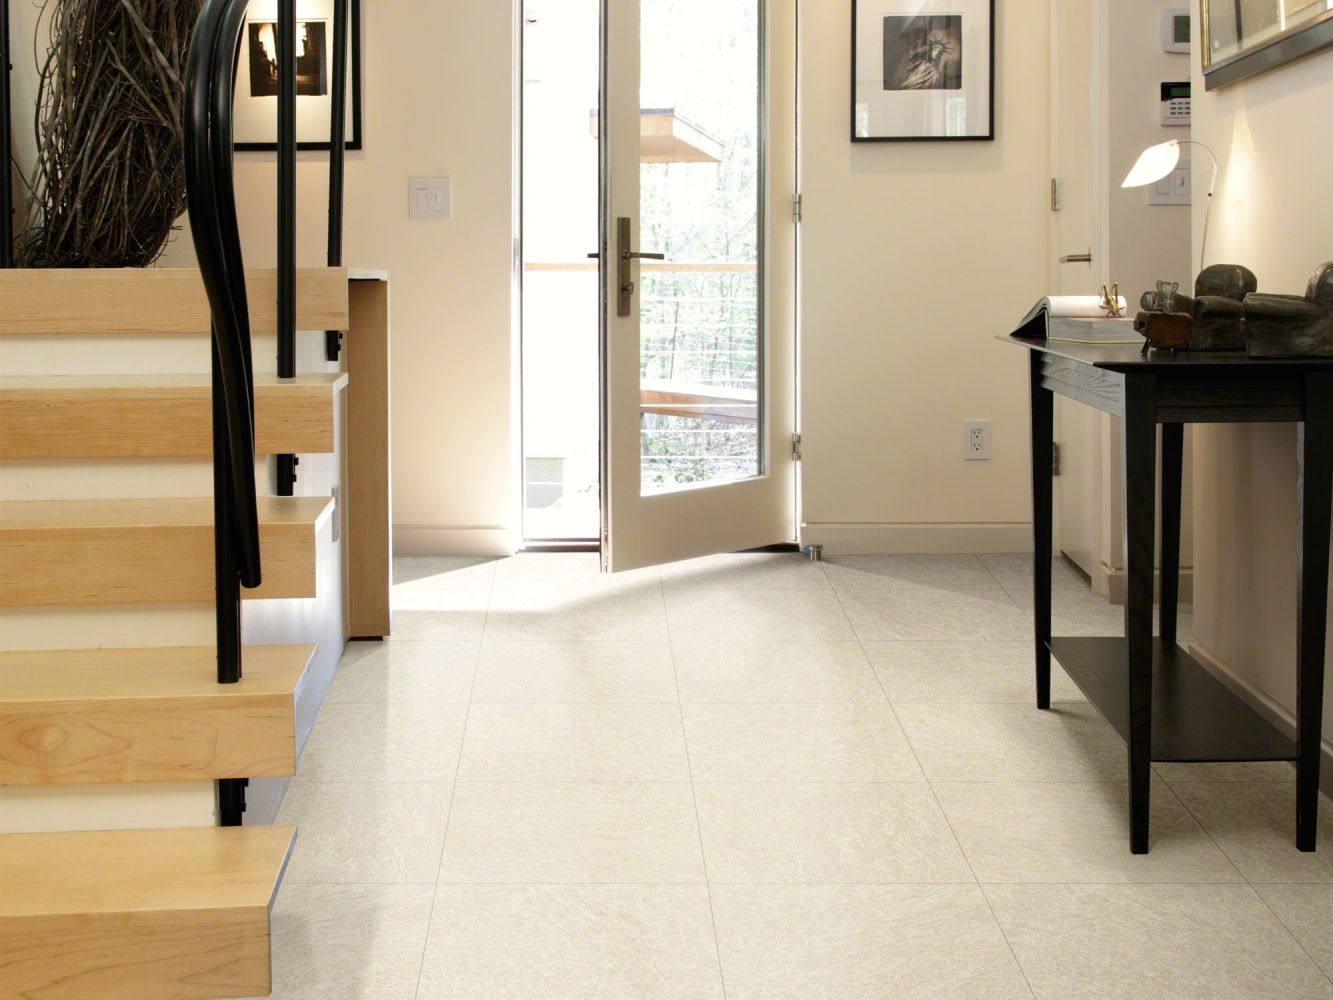 Shaw Floors Resilient Property Solutions Pro 12 Florida 00118_VG062